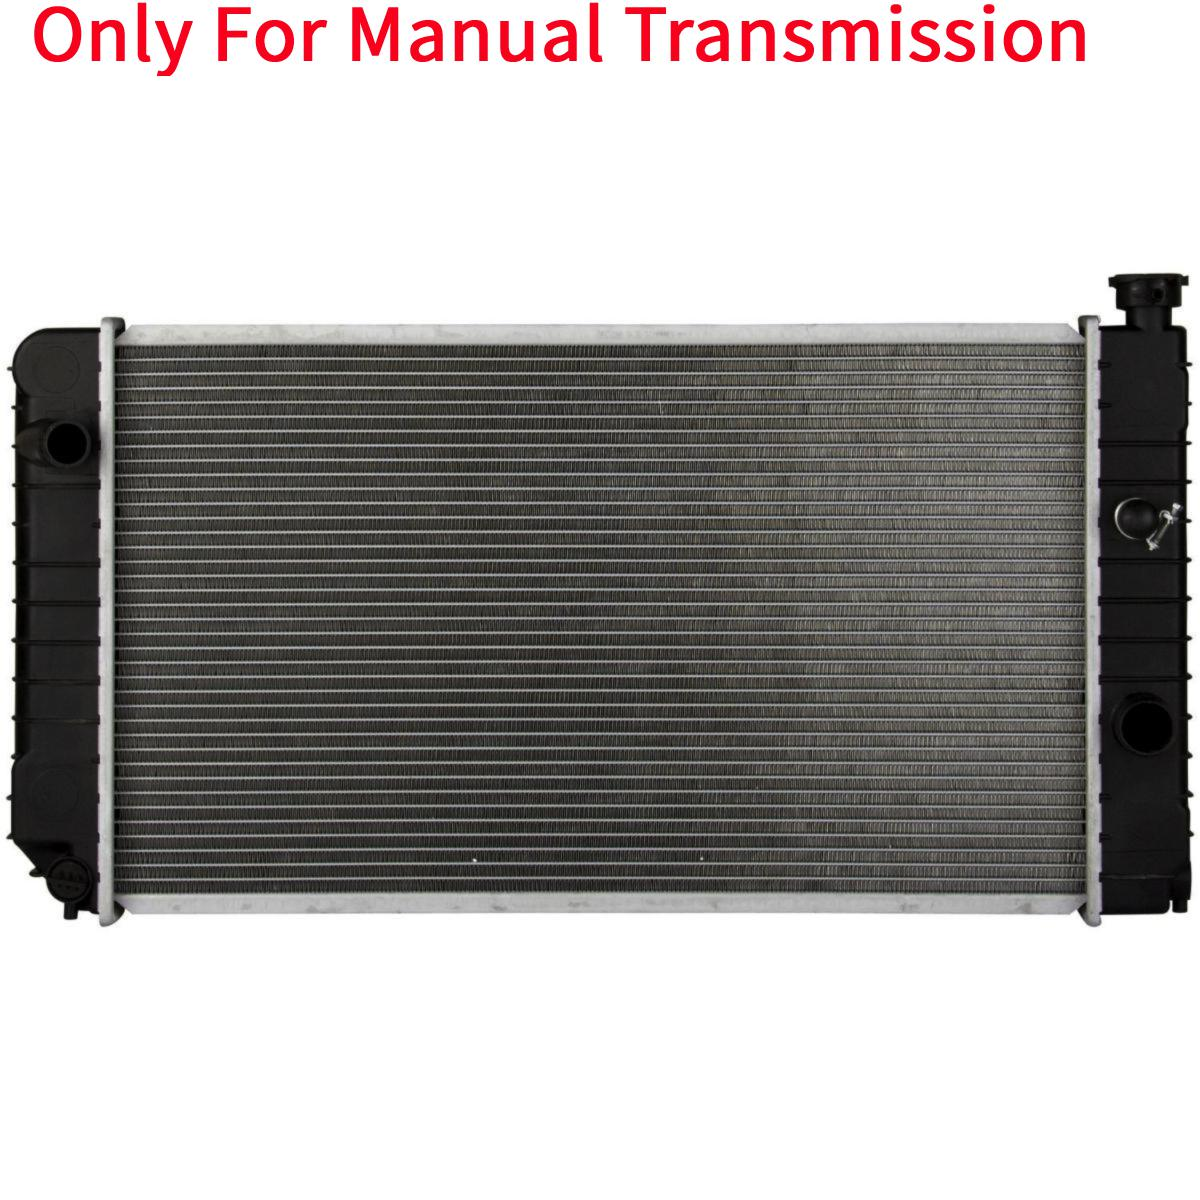 1826 RADIATOR FOR GMC CHEVY FITS BLAZER S10 JIMMY SONOMA HOMBRE BRAVADA 4.3 V6